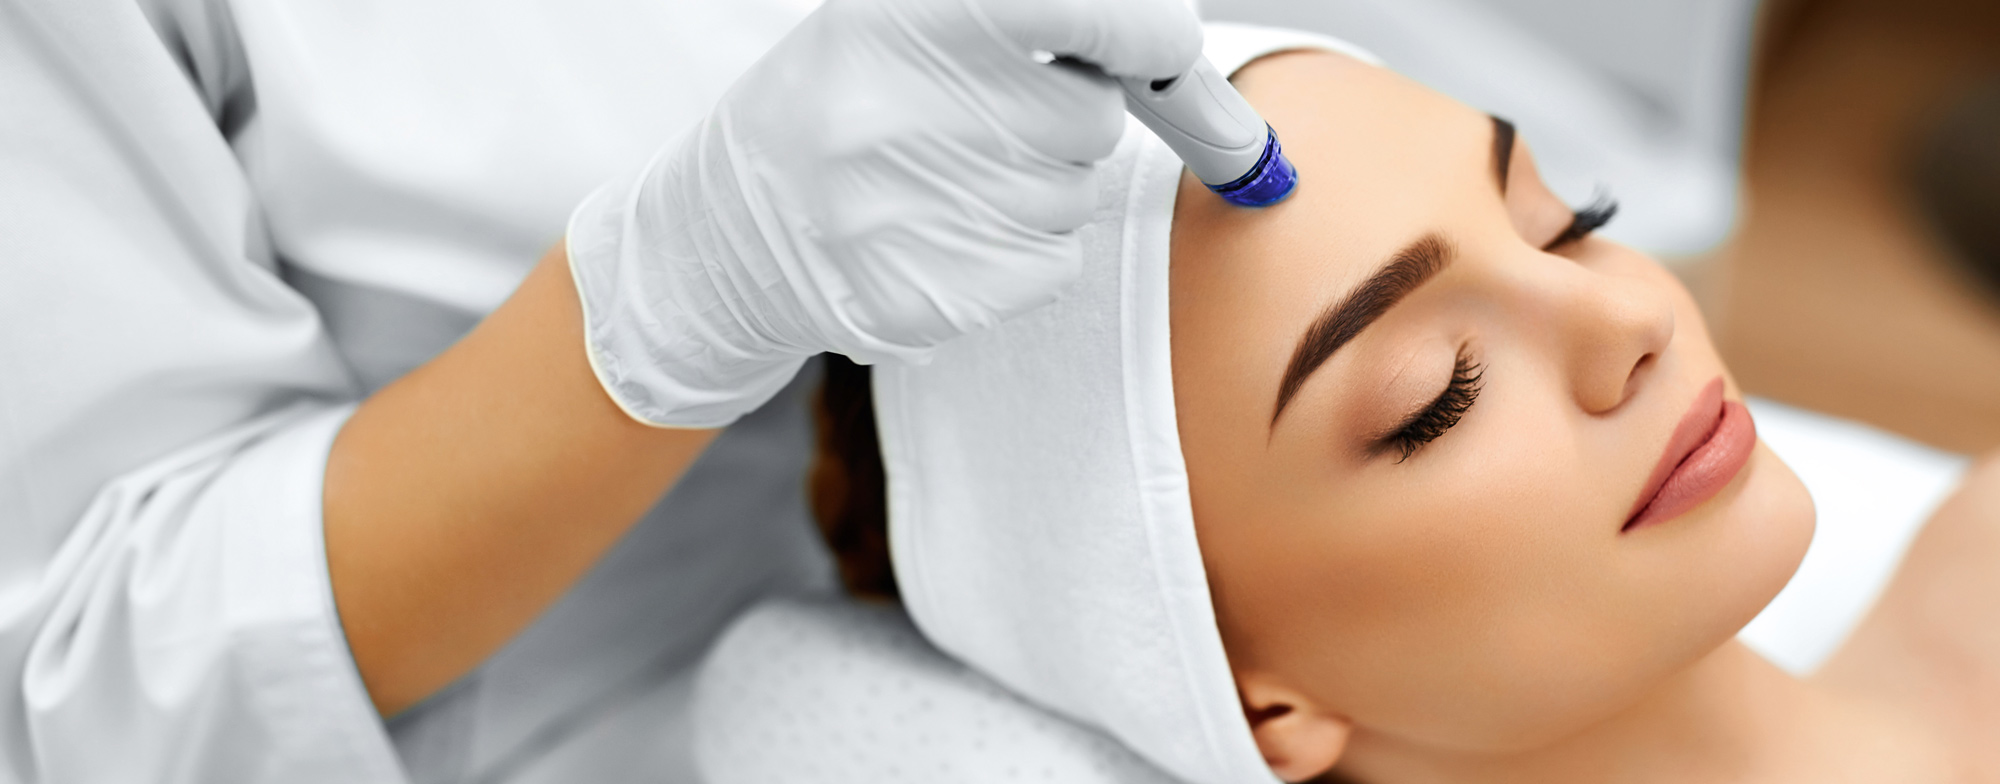 Woman getting cosmetic treatment on her forehead